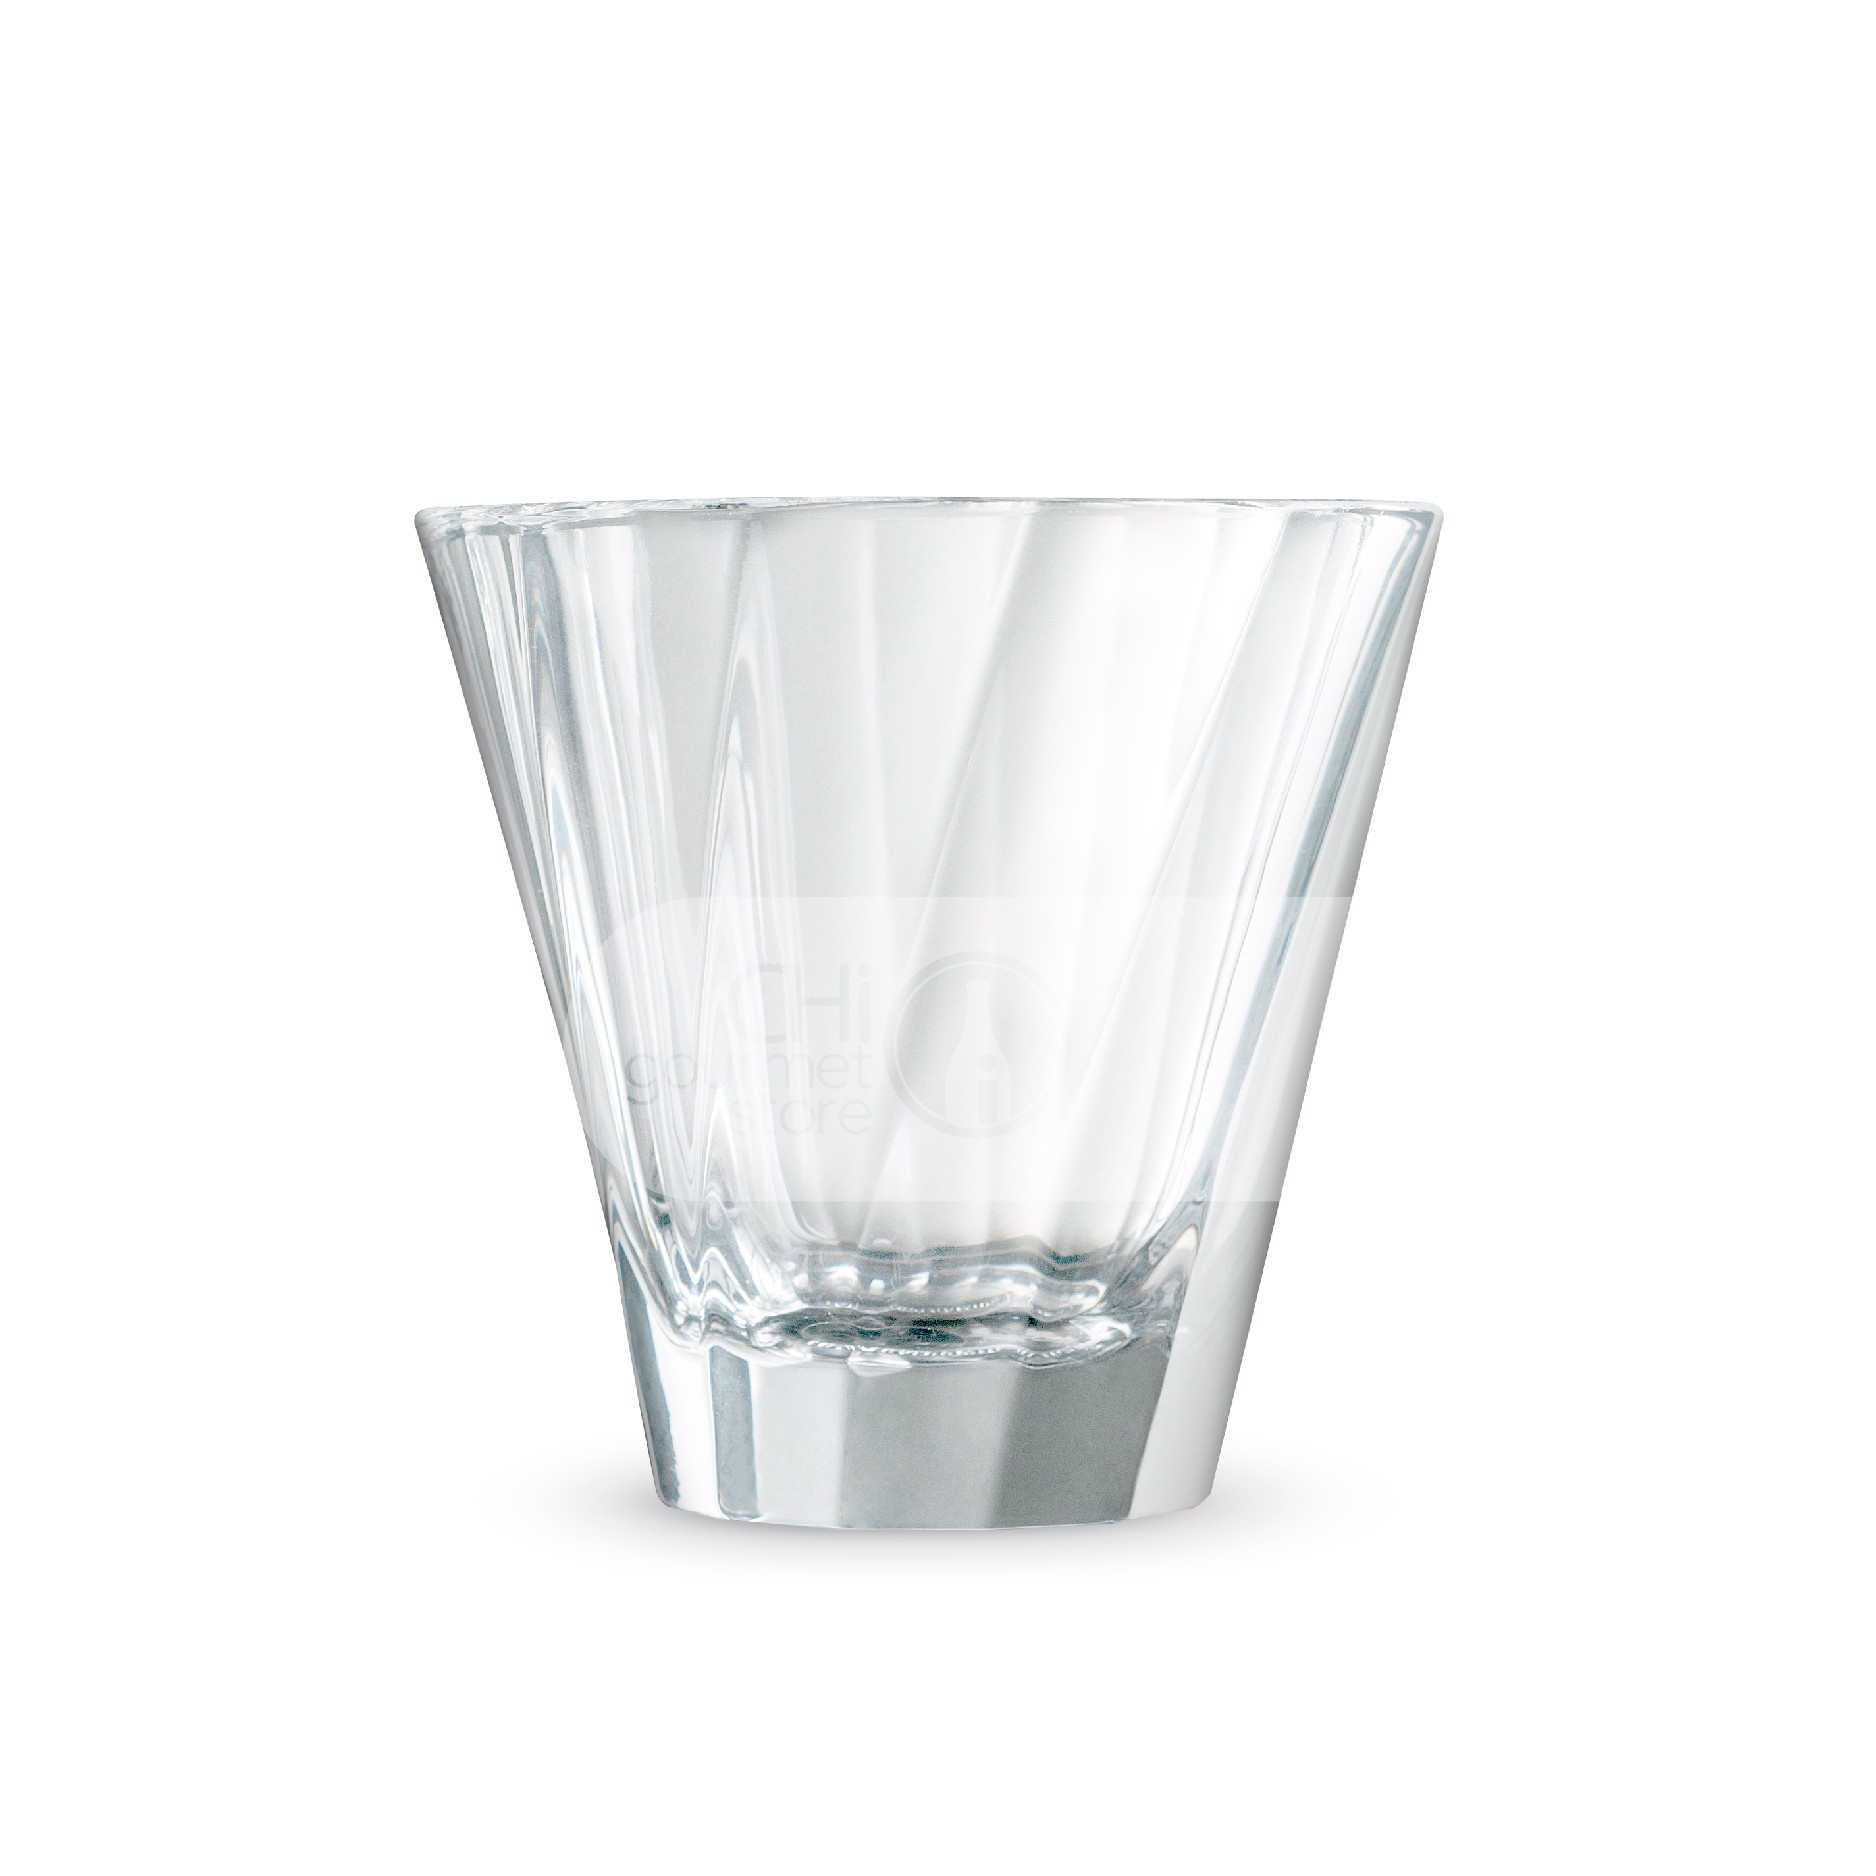 Urban glass twisted Cappuccino glass (clear)